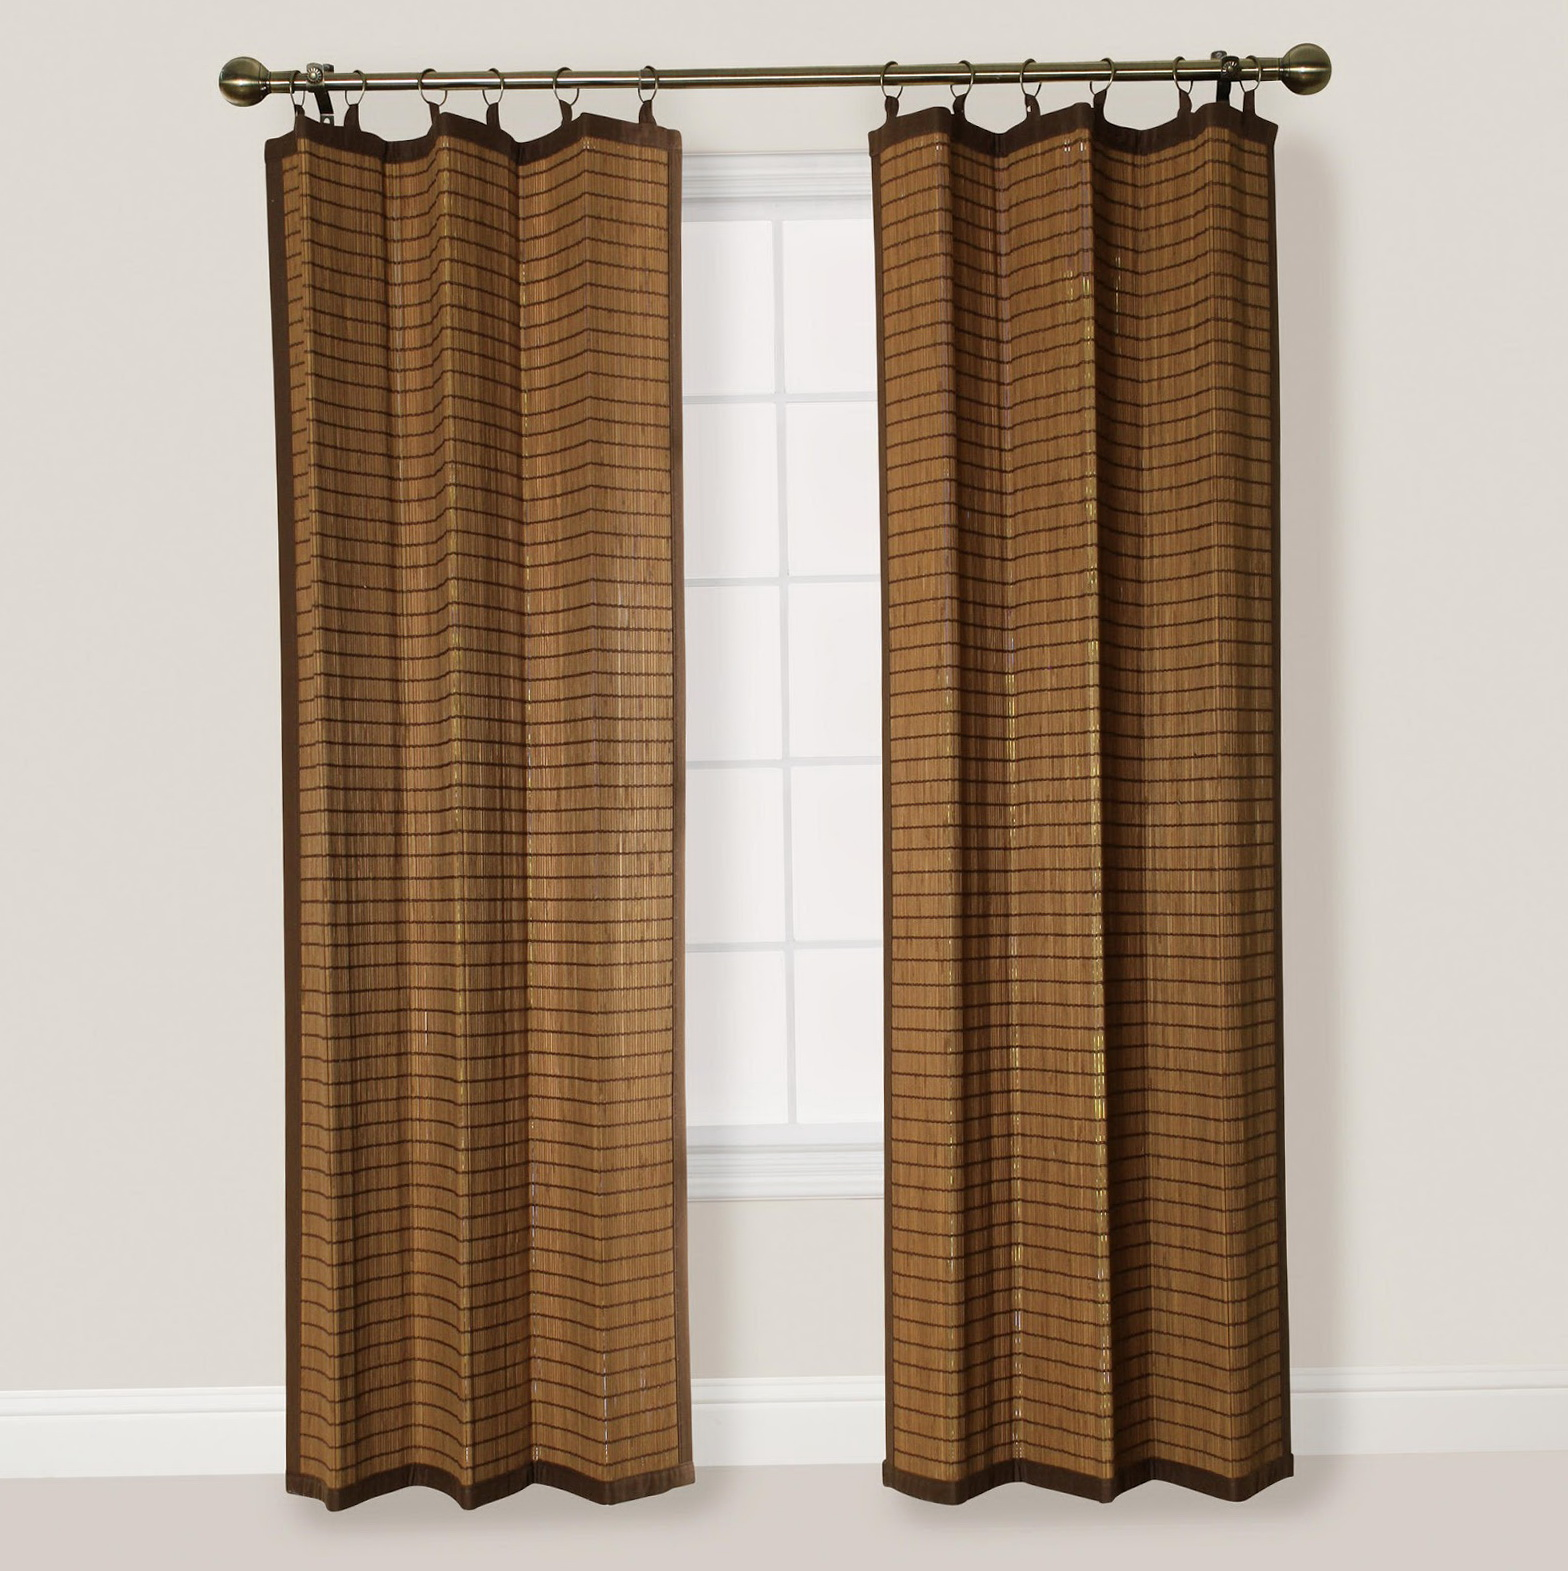 Bamboo Curtains For Doors Home Design Ideas